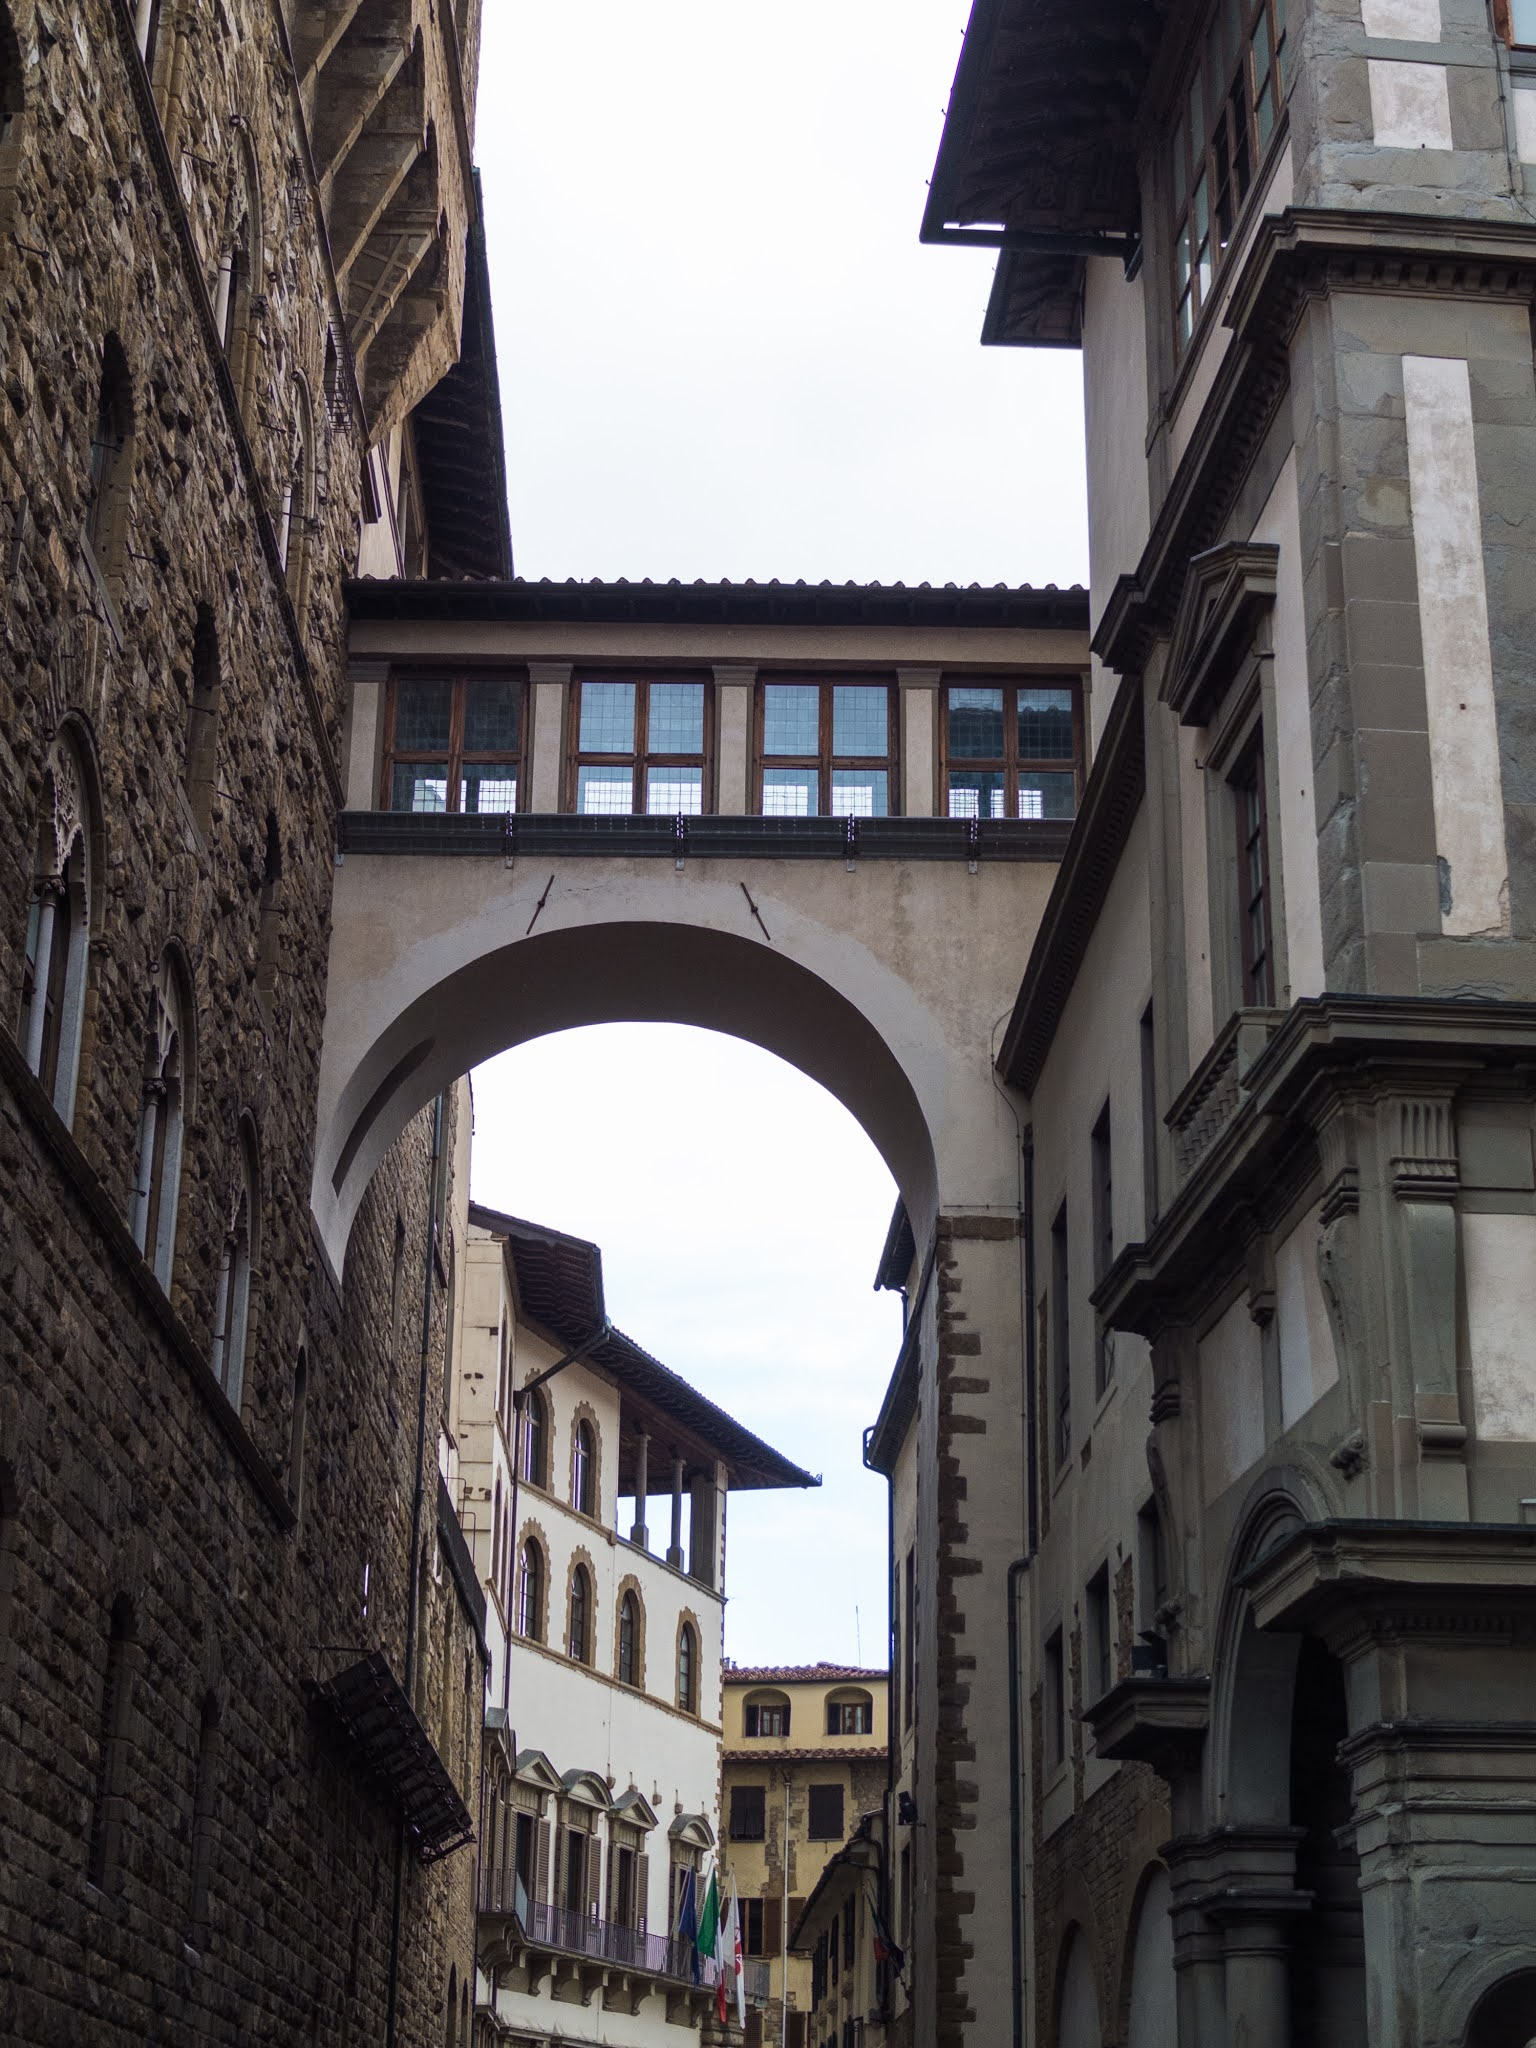 View of a tall archway connecting two buildings in Florence.